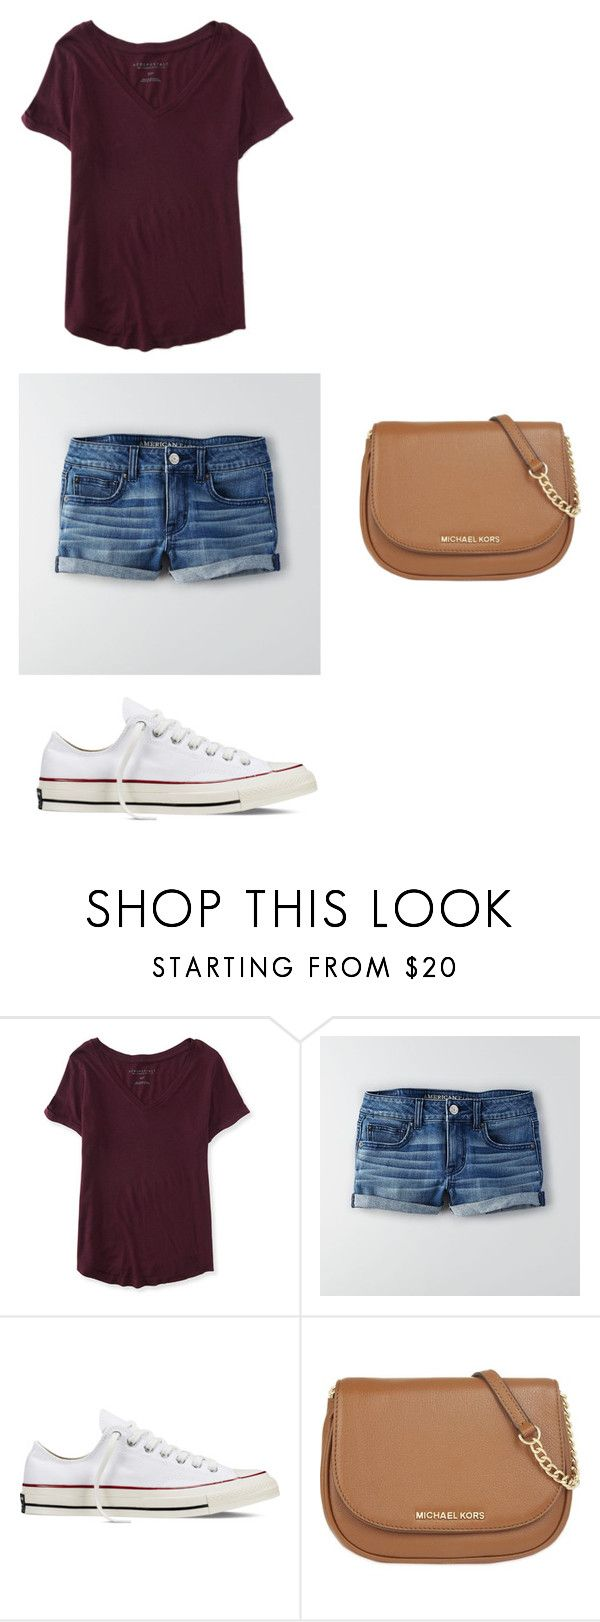 """Extra Outfit for Spring Break in Florida"" by syds-fashion-4-ever ❤ liked on Polyvore featuring Aéropostale, American Eagle Outfitters, Converse, MICHAEL Michael Kors, women's clothing, women's fashion, women, female, woman and misses"